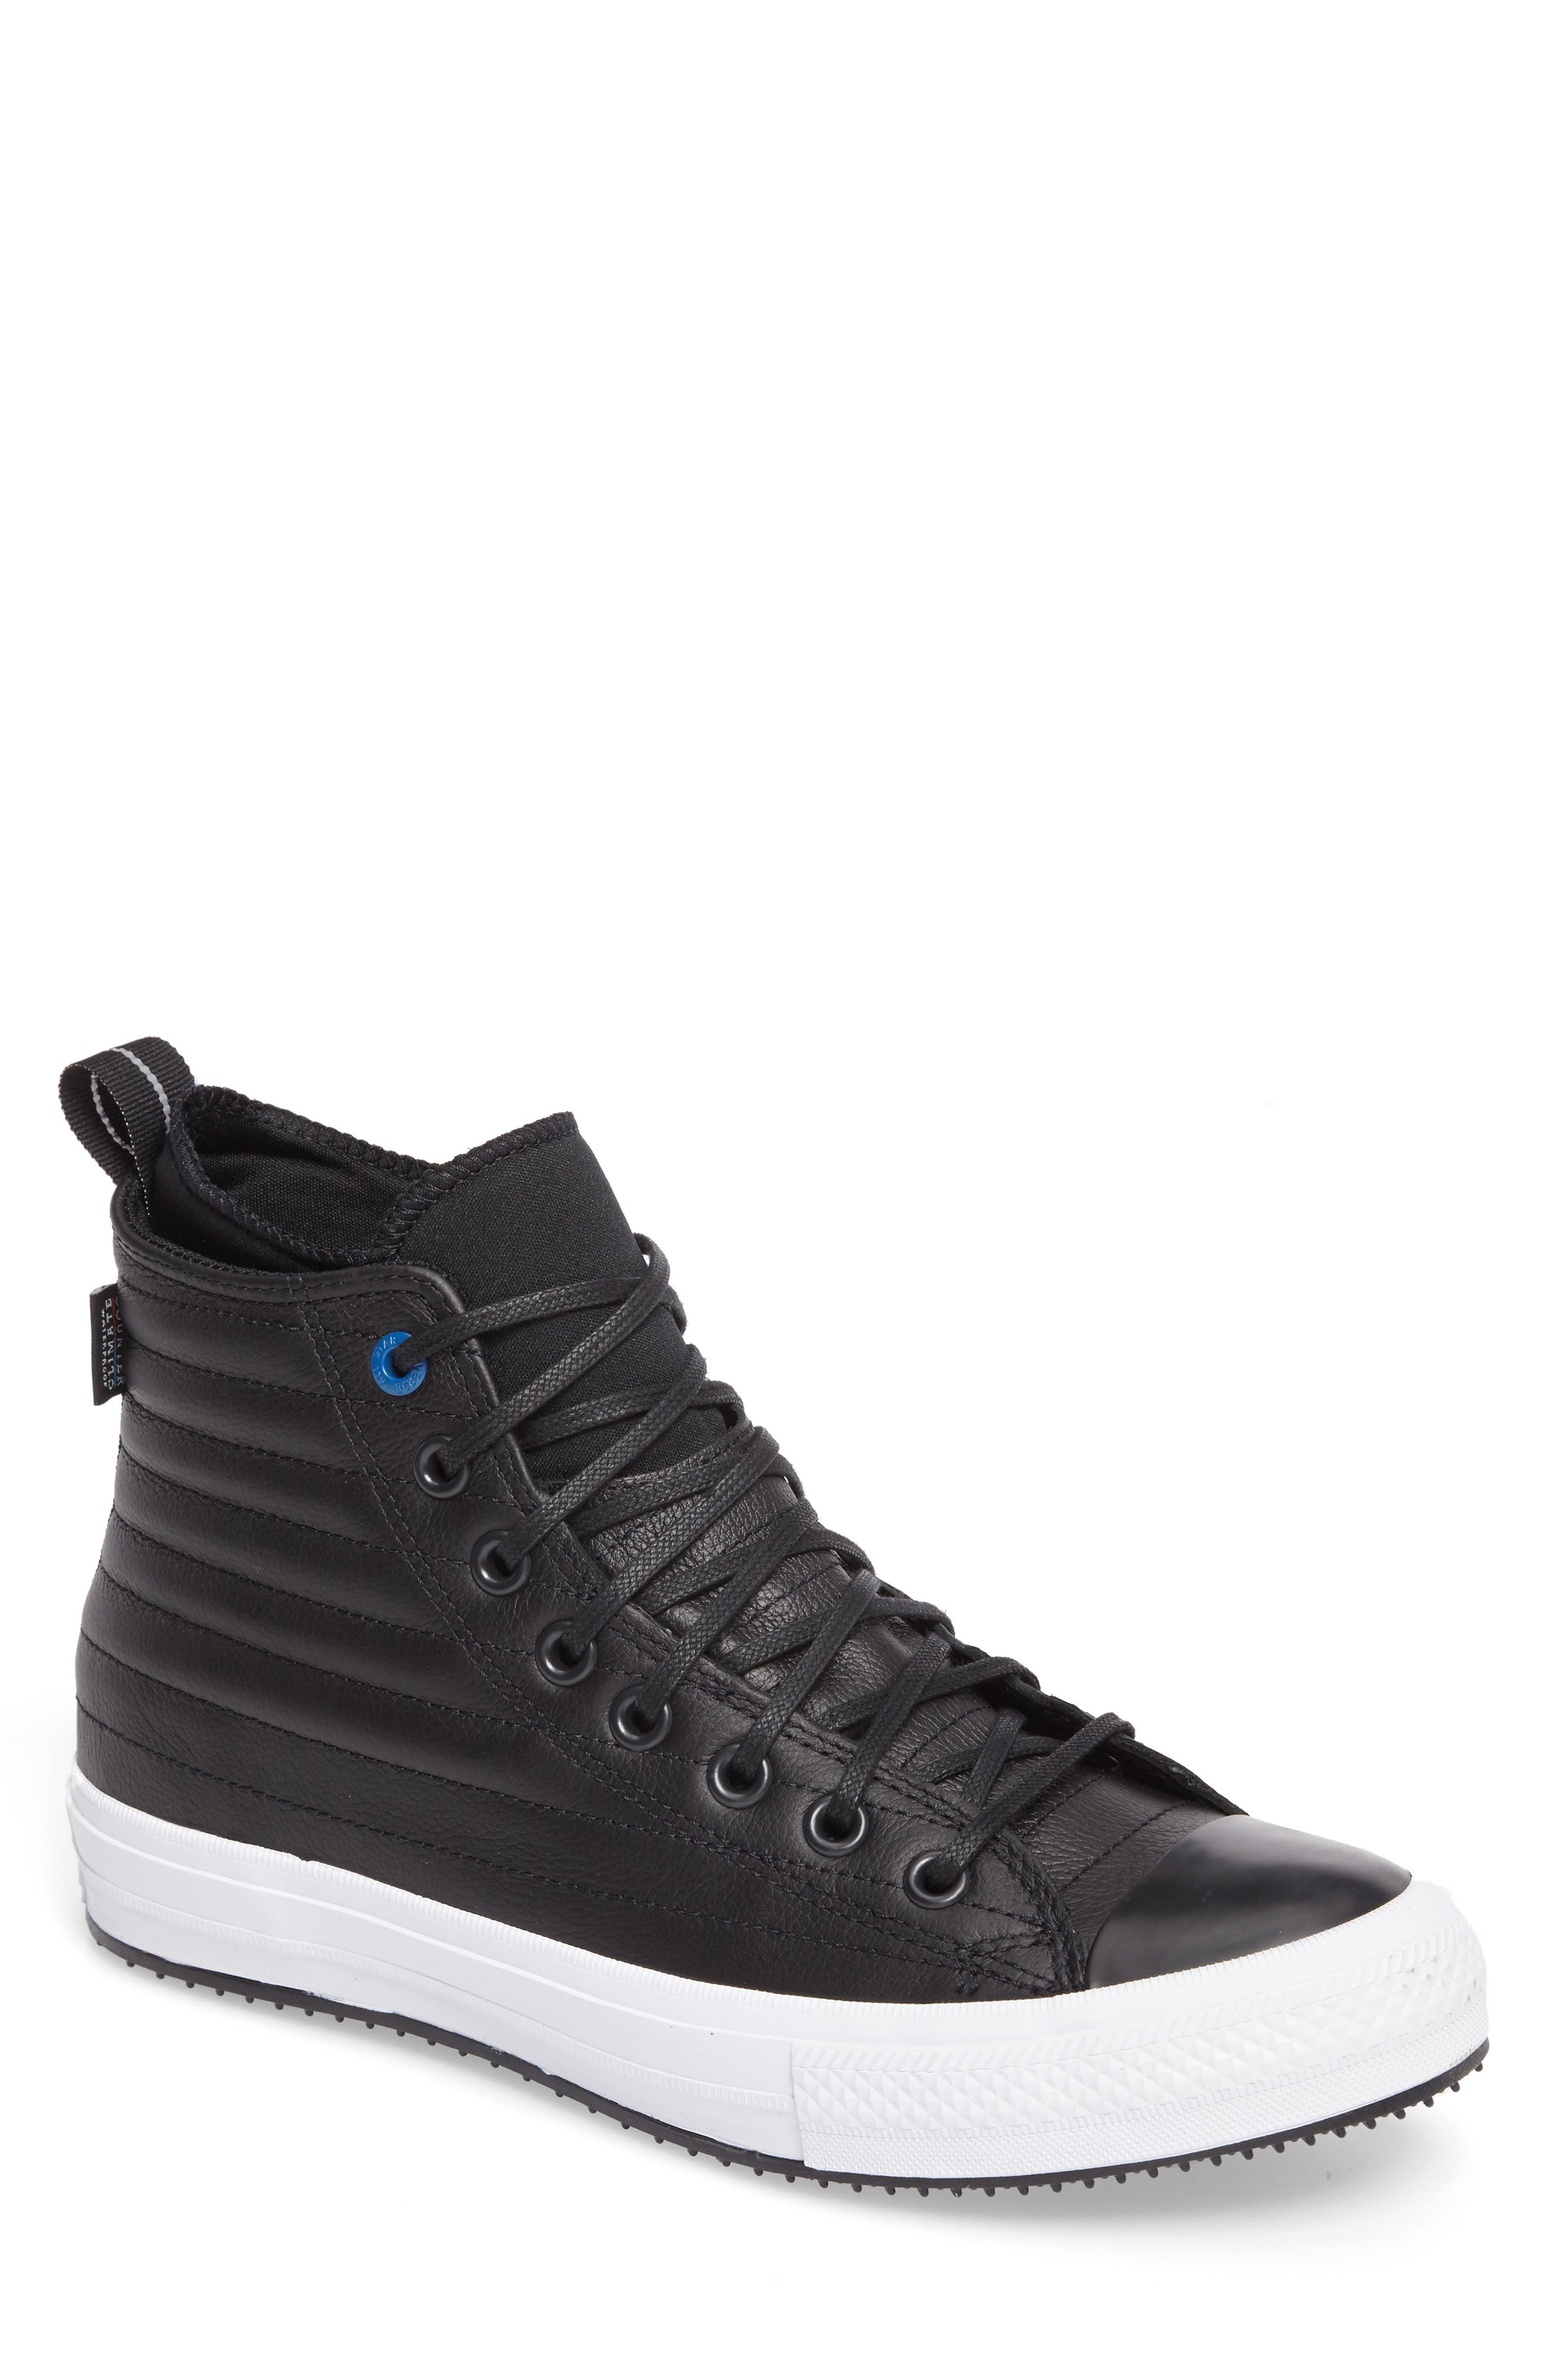 Chuck Taylor<sup>®</sup> All Star<sup>®</sup> Waterproof Quilted Sneaker,                             Main thumbnail 1, color,                             Black Leather